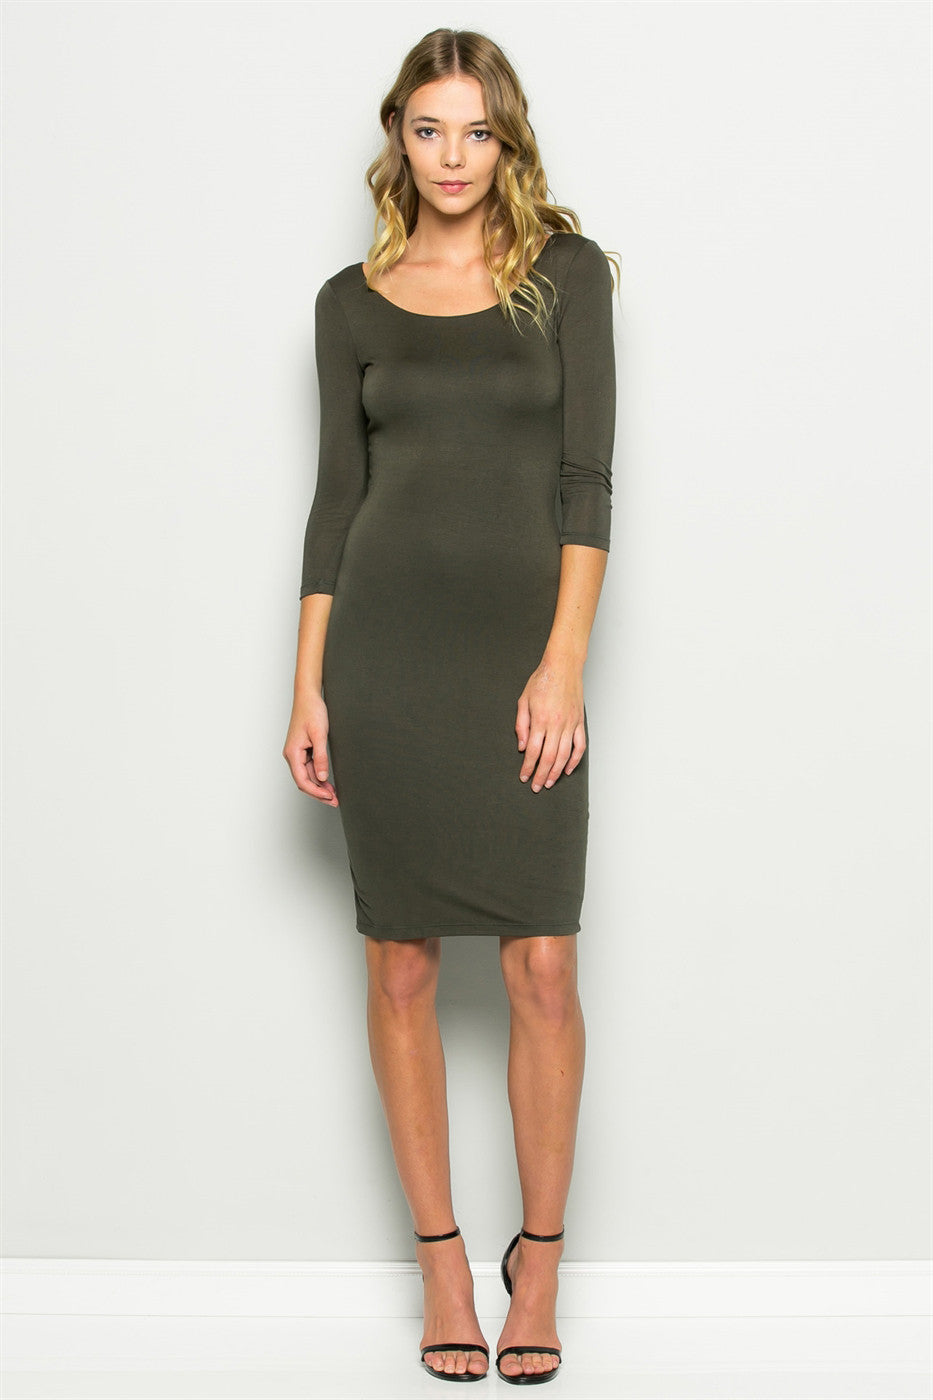 women's casual 3/4 sleeve scoop neck bodycon midi jersey dress. Olive green. Front view